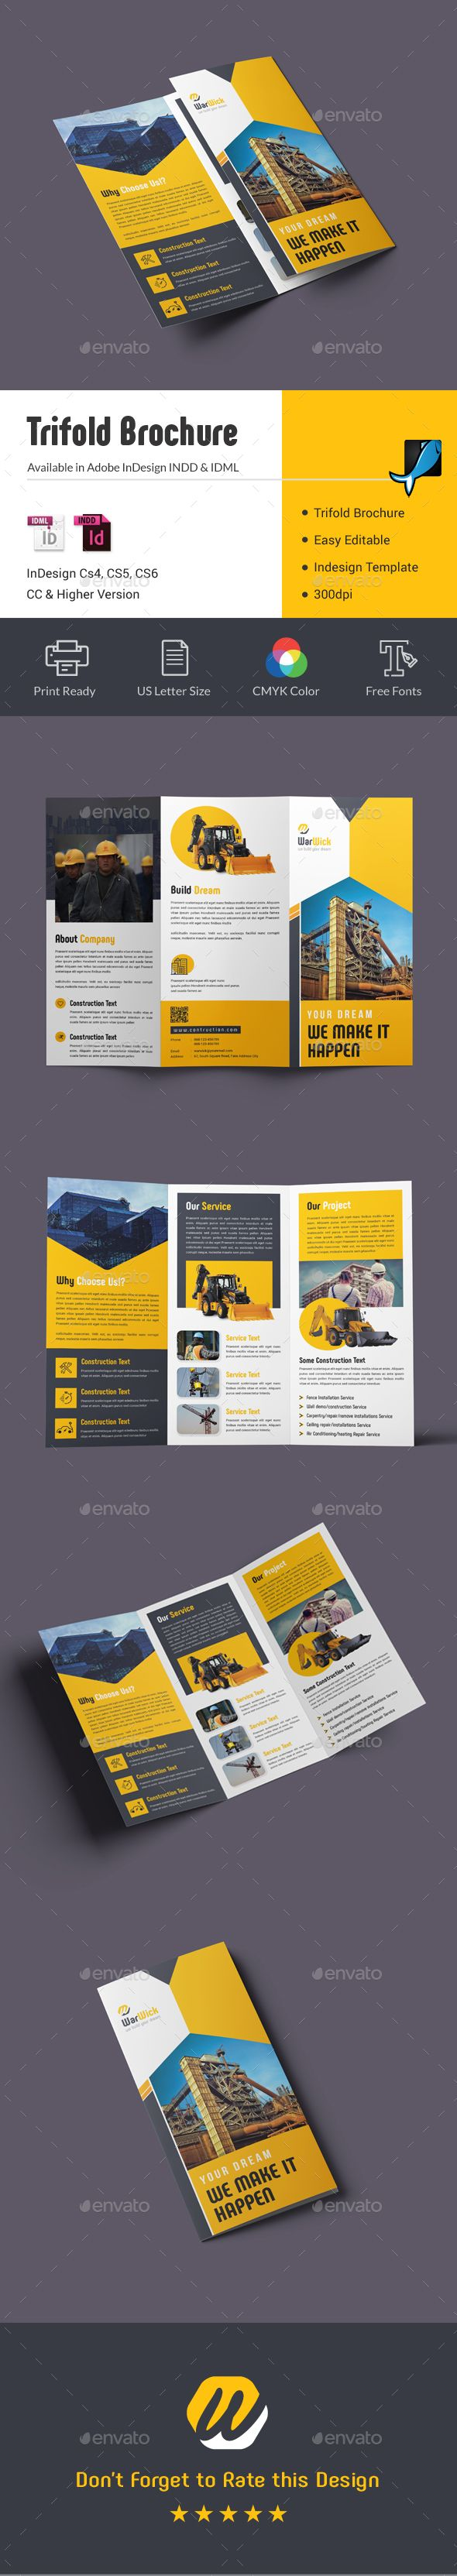 construction trifold brochure template indesign indd us letter